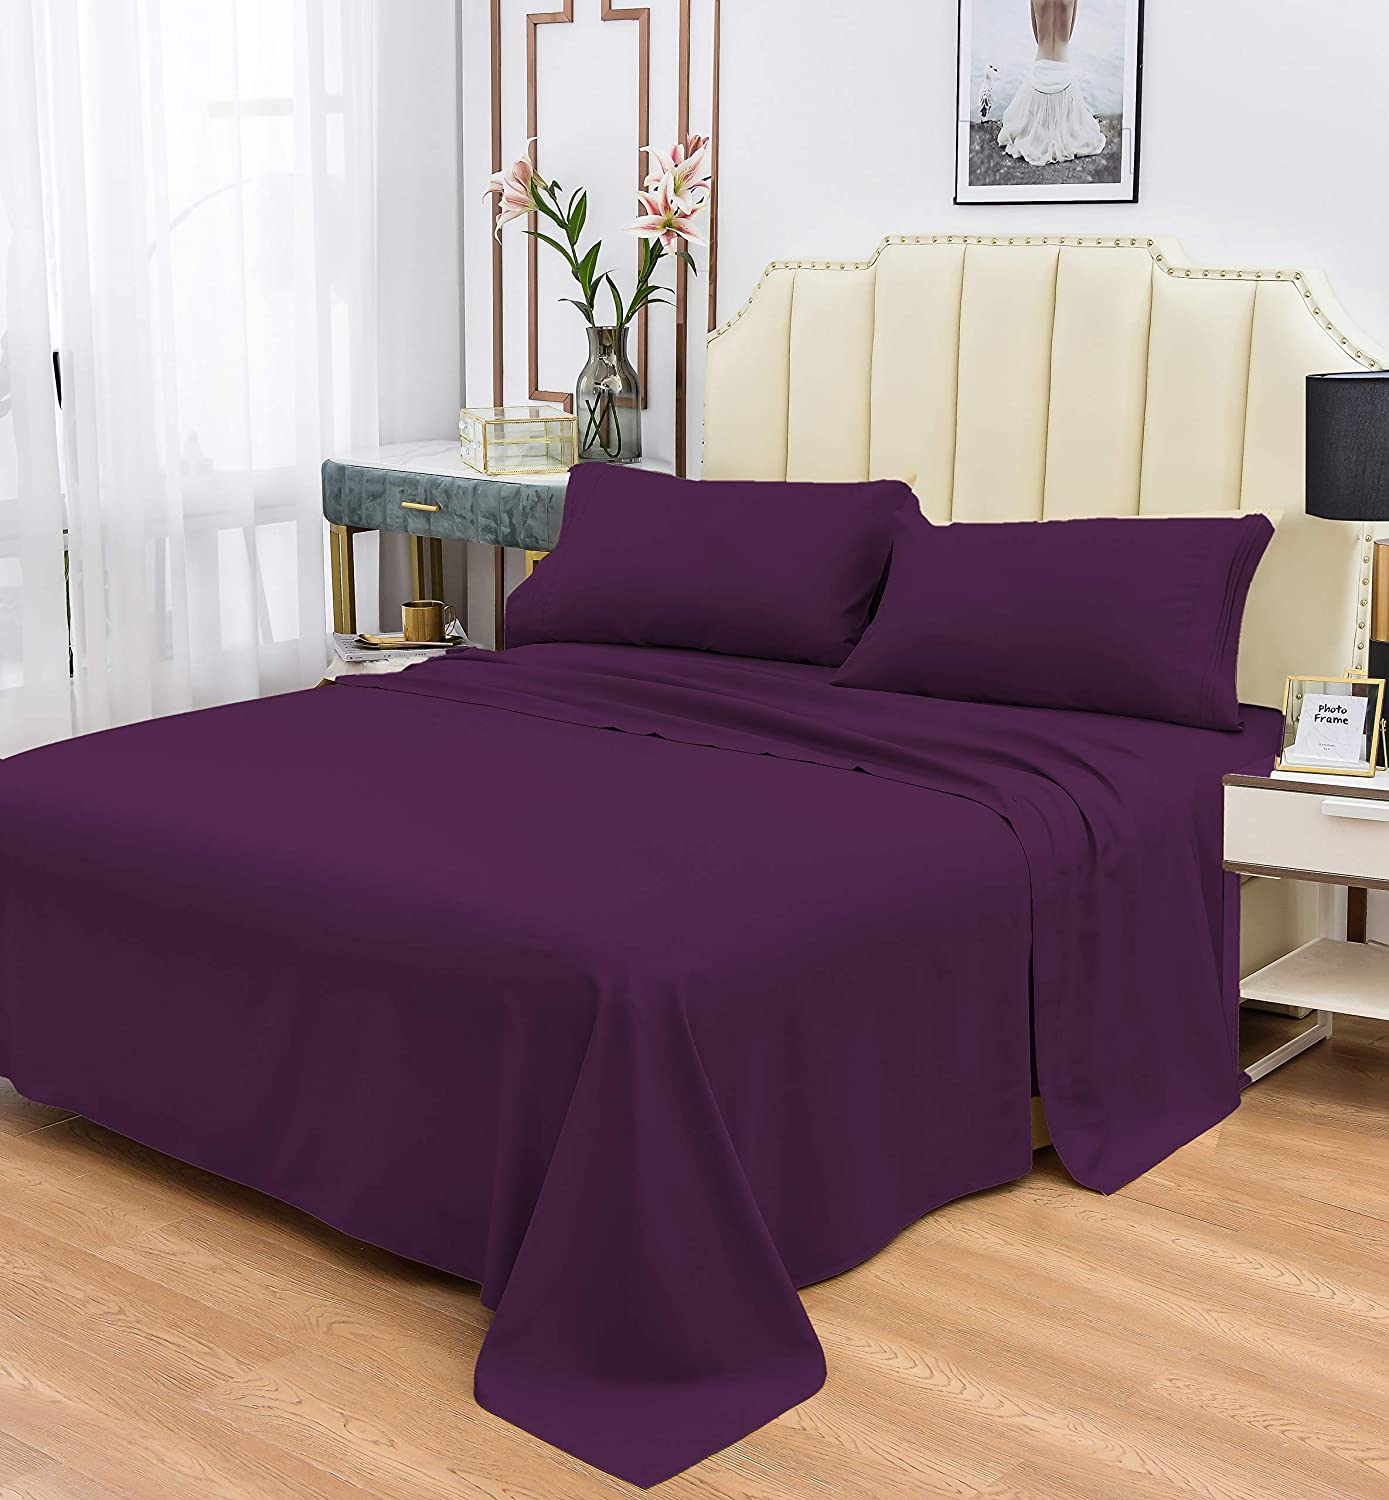 """Cool Products Ultra Soft Luxury 1800 Series Bamboo Sheets Set - Hypoallergenic - Fade, Wrinkle Resistant - Deep Pocket 16"""" - Bamboo Sheets - 4 Pieces, Purple, Queen"""